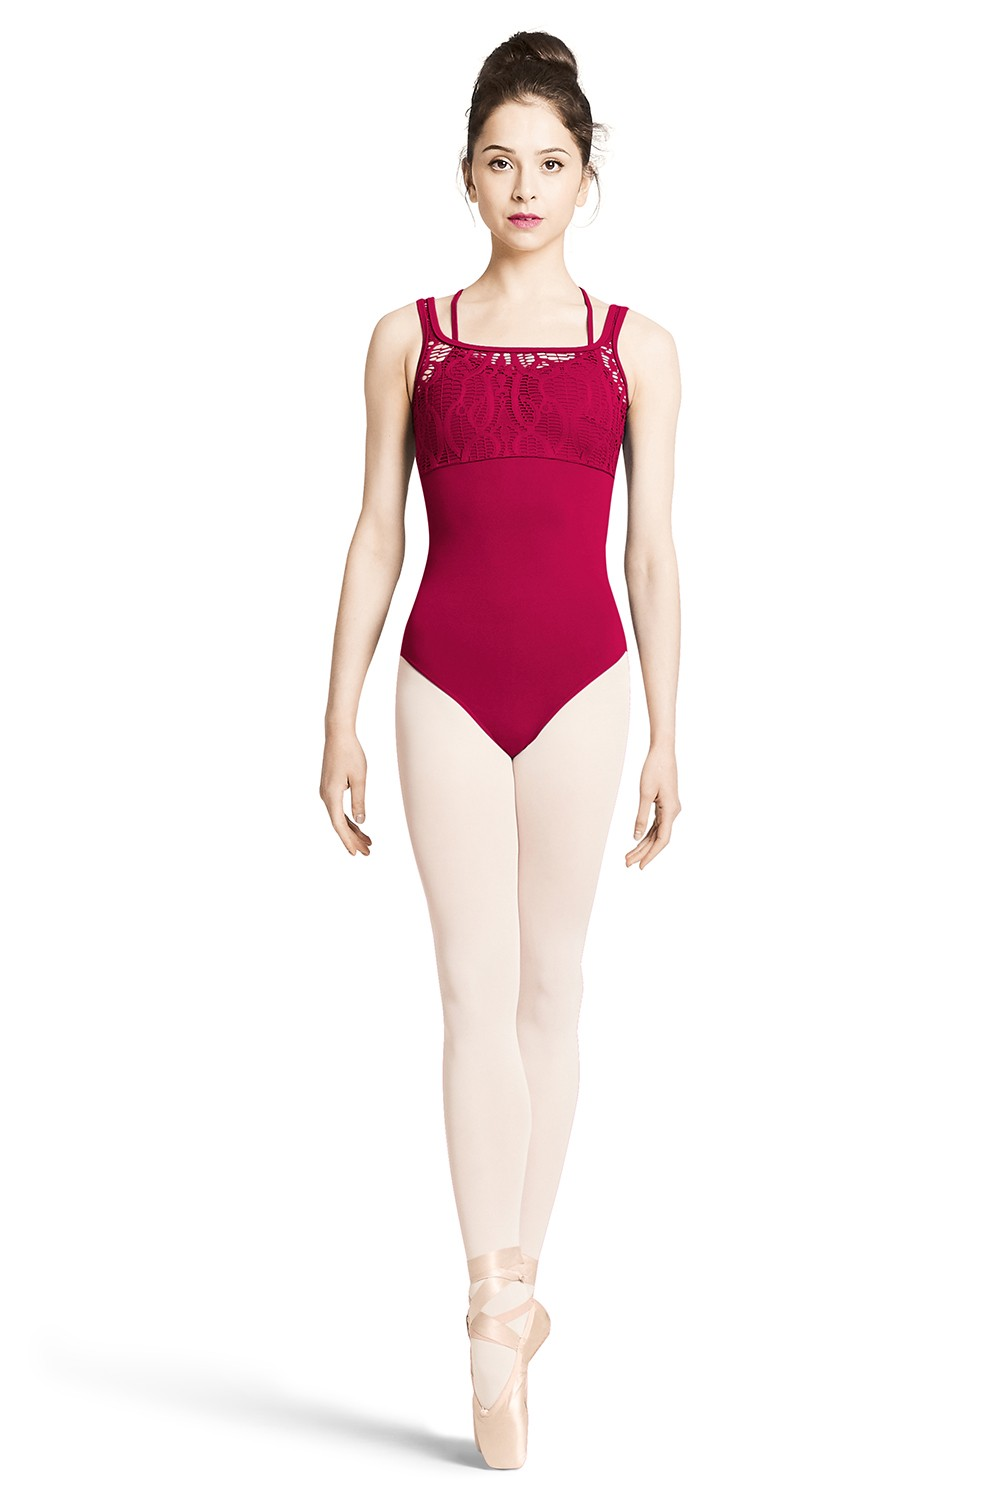 Justaucorps Sans Manches Corsage En Dentelle - Jeune Fille Children's Dance Leotards